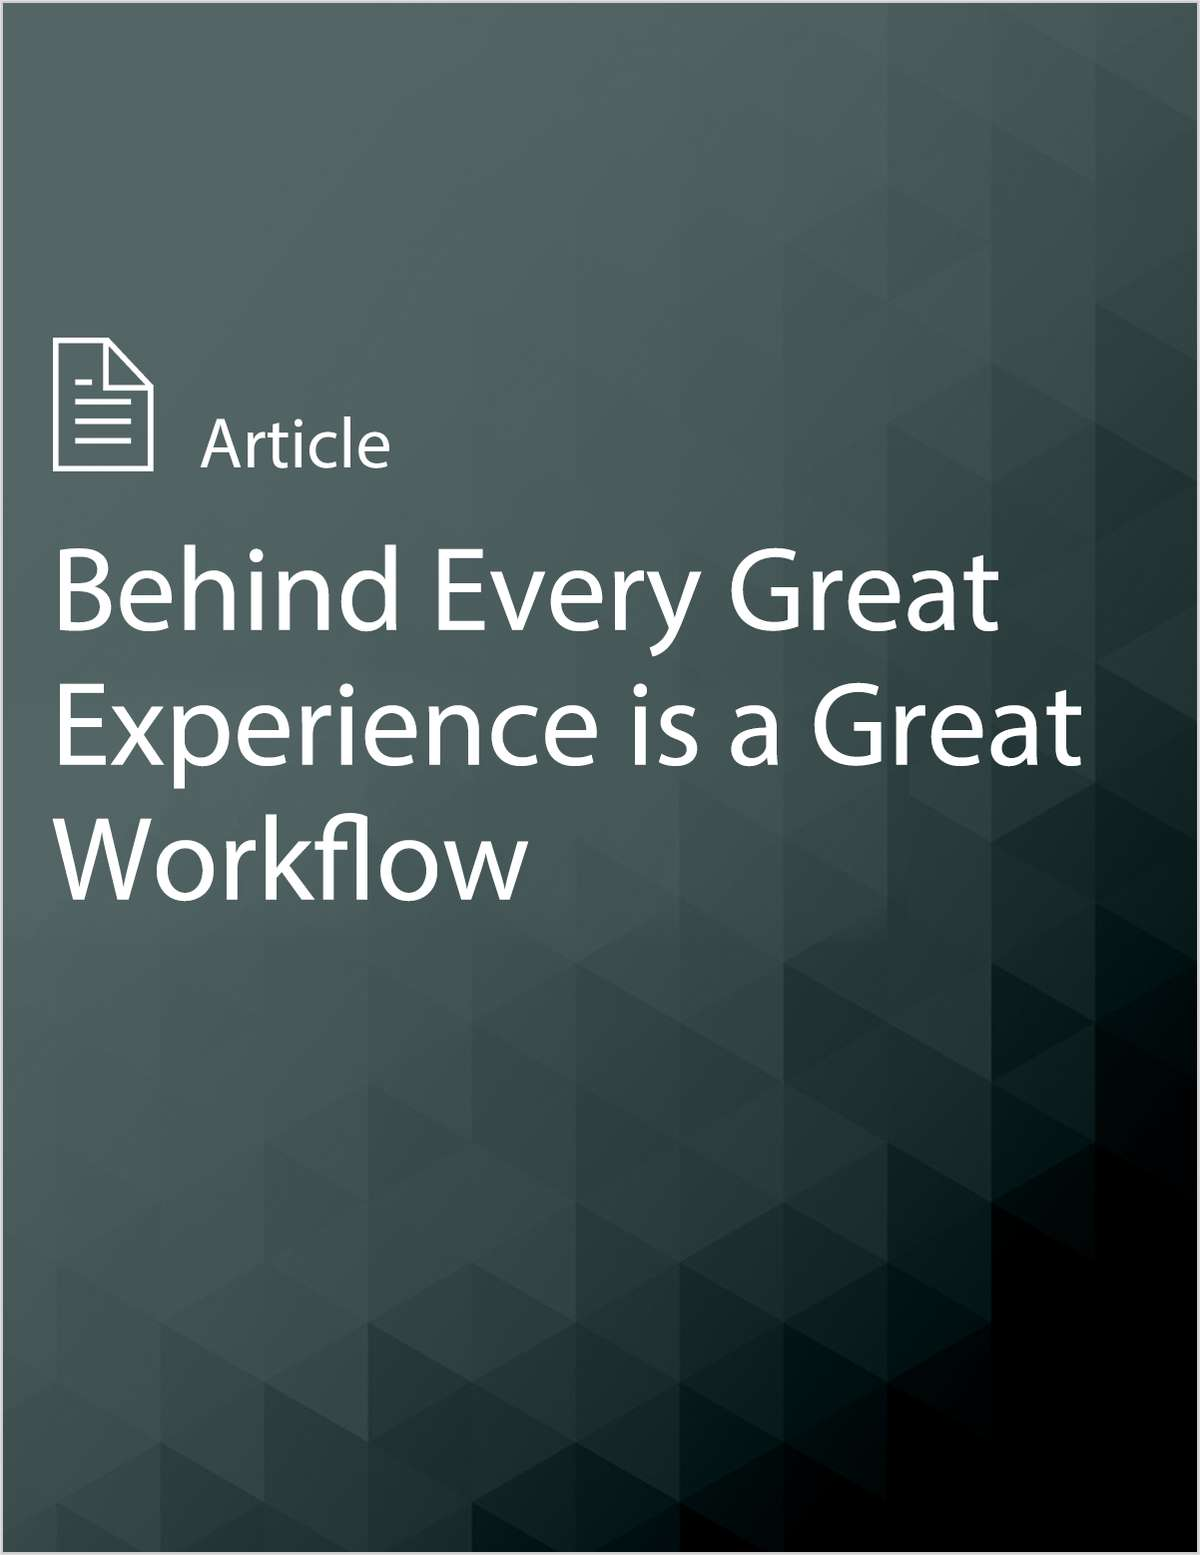 Behind Every Great Experience is a Great Workflow